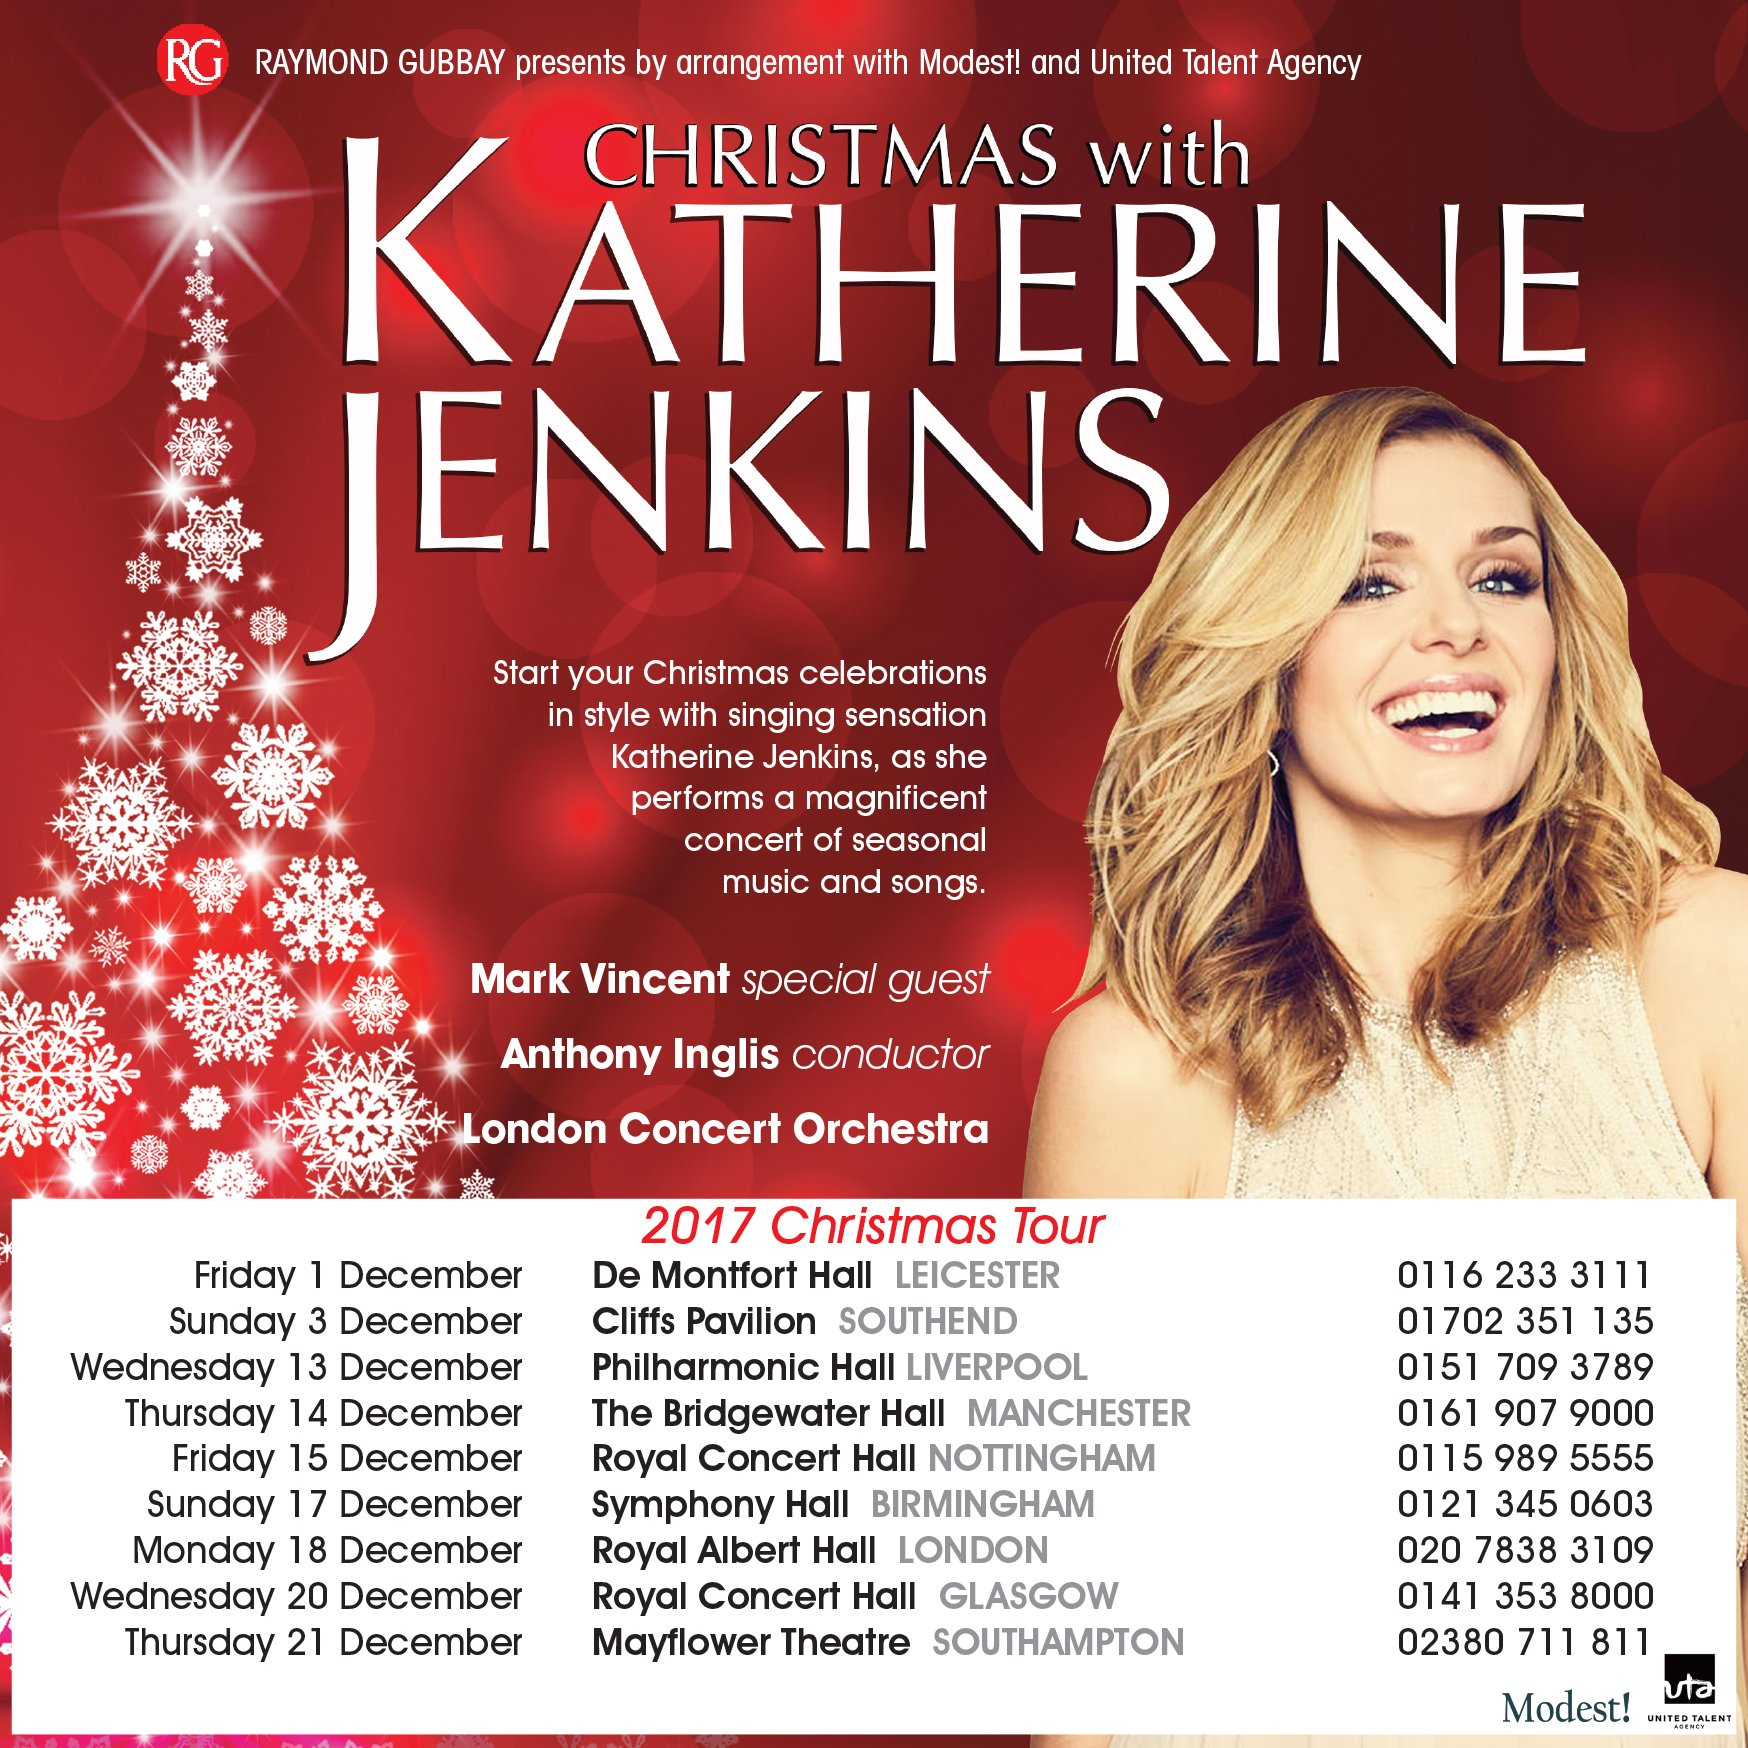 RT @ModestMgmt: Tickets for Christmas with @KathJenkins are on sale now! Get yours here: https://t.co/lhAASYC98w https://t.co/LcjUBZ7B3n